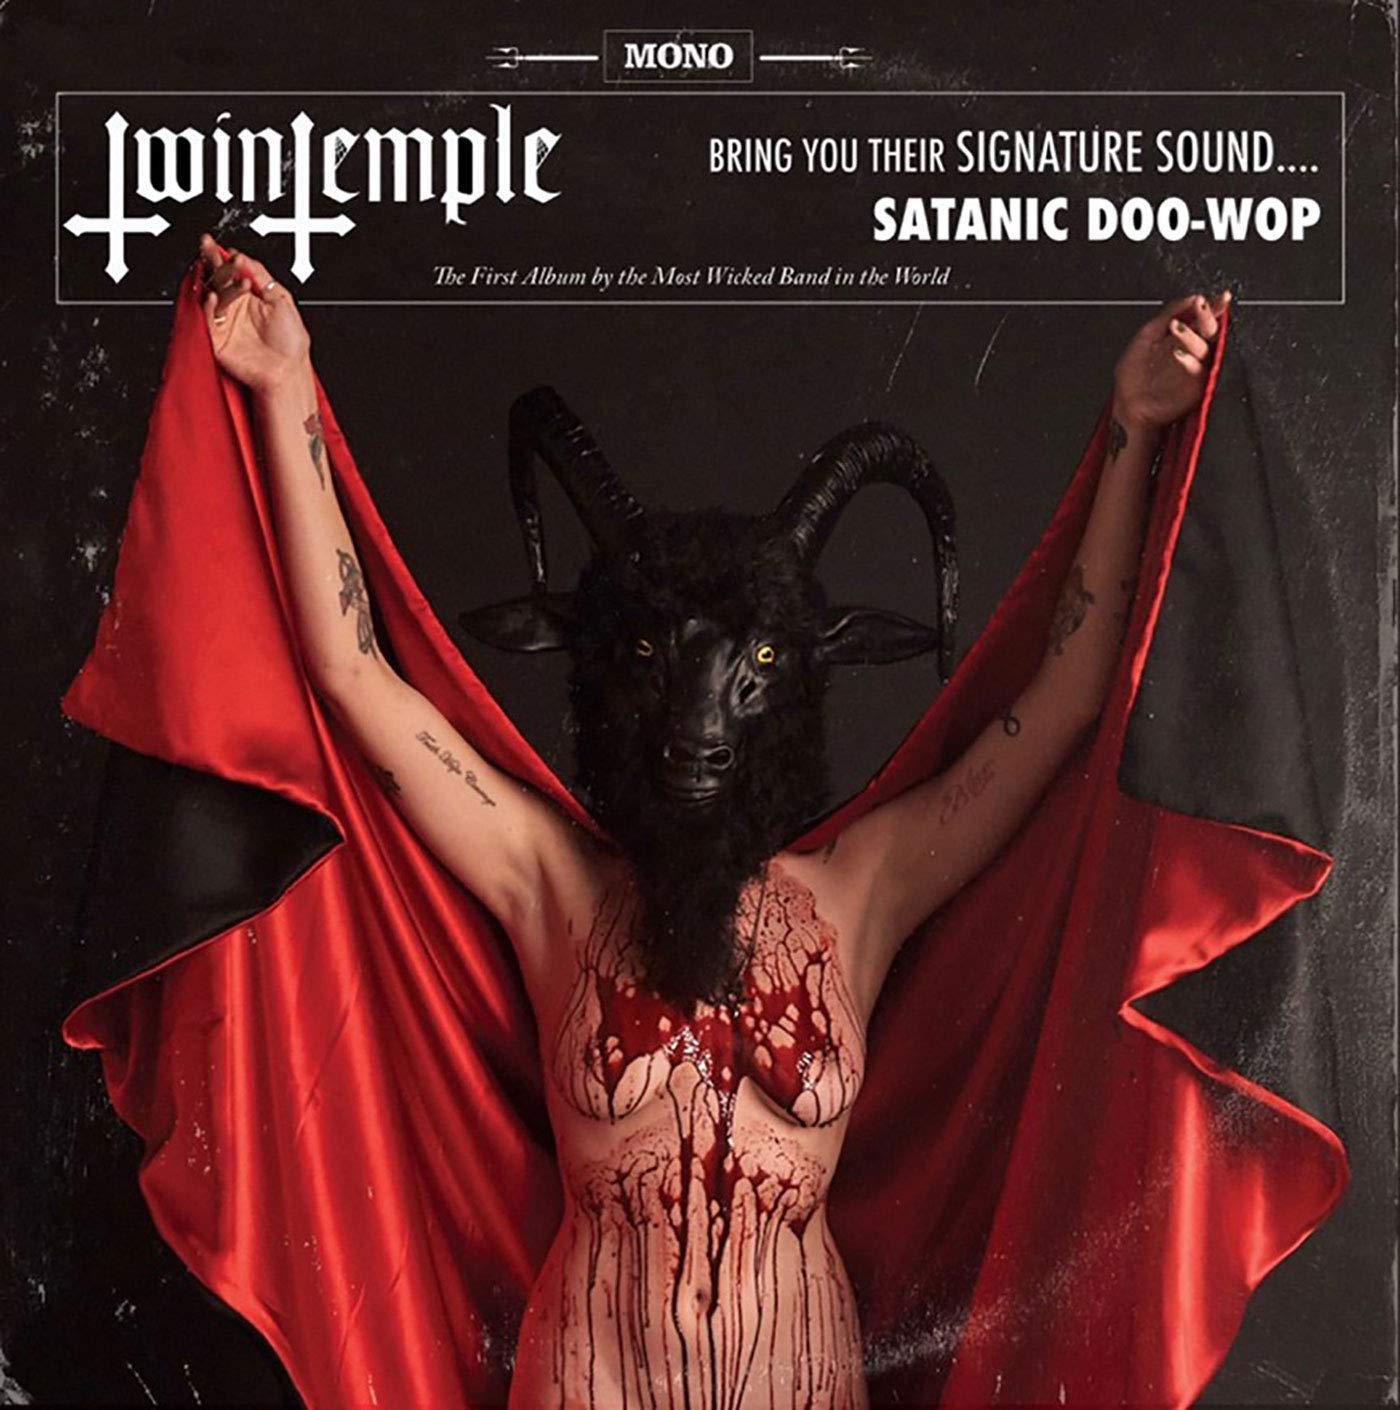 Cassette : Twin Temple - Twin Temple (bring You Their Signature Sound Satanic Doo-wop) (Cassette)